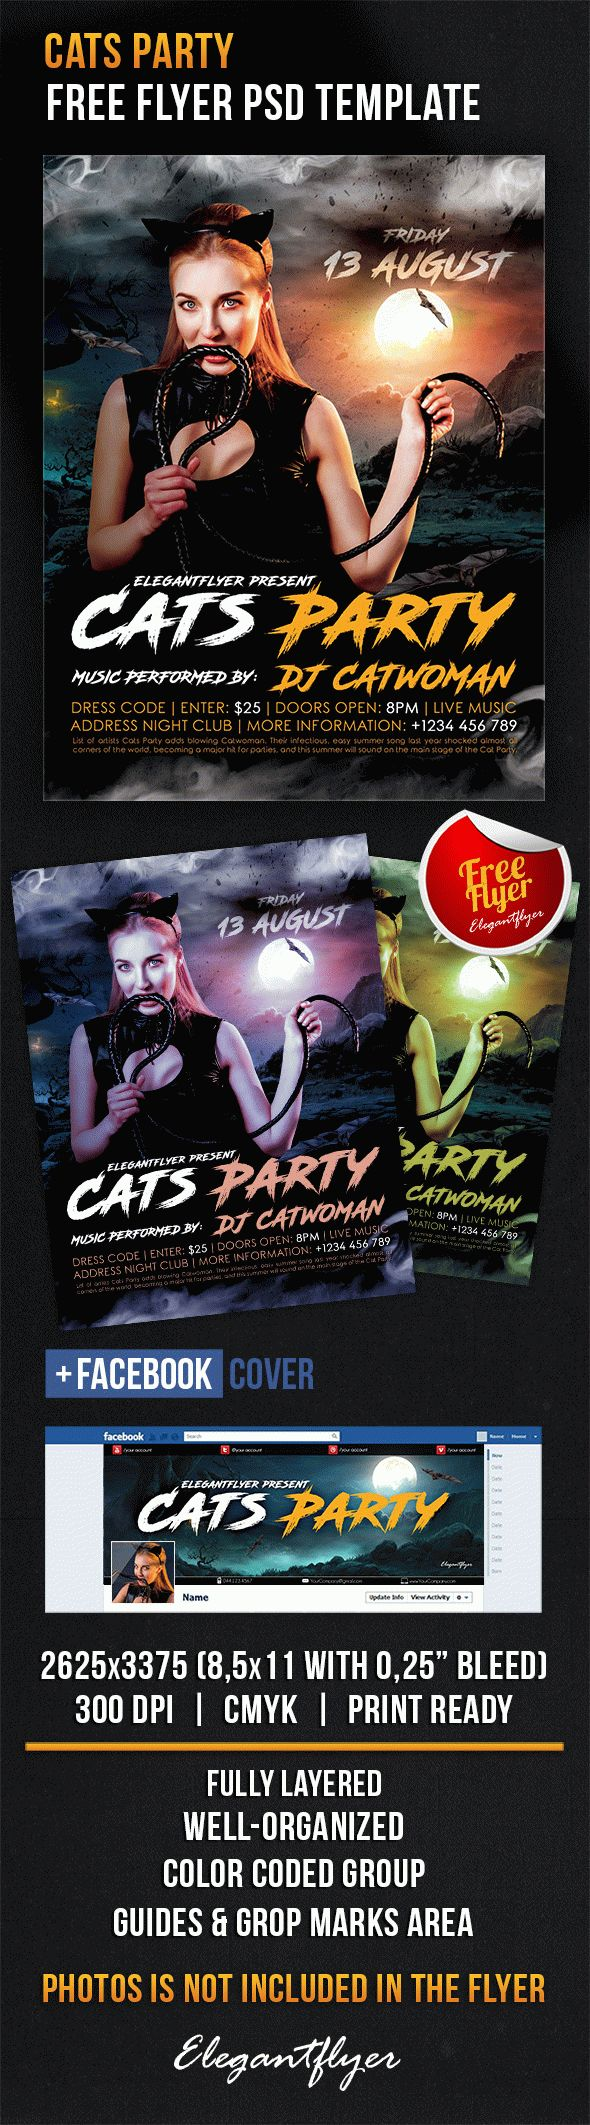 Cats Party – Free Flyer PSD Template